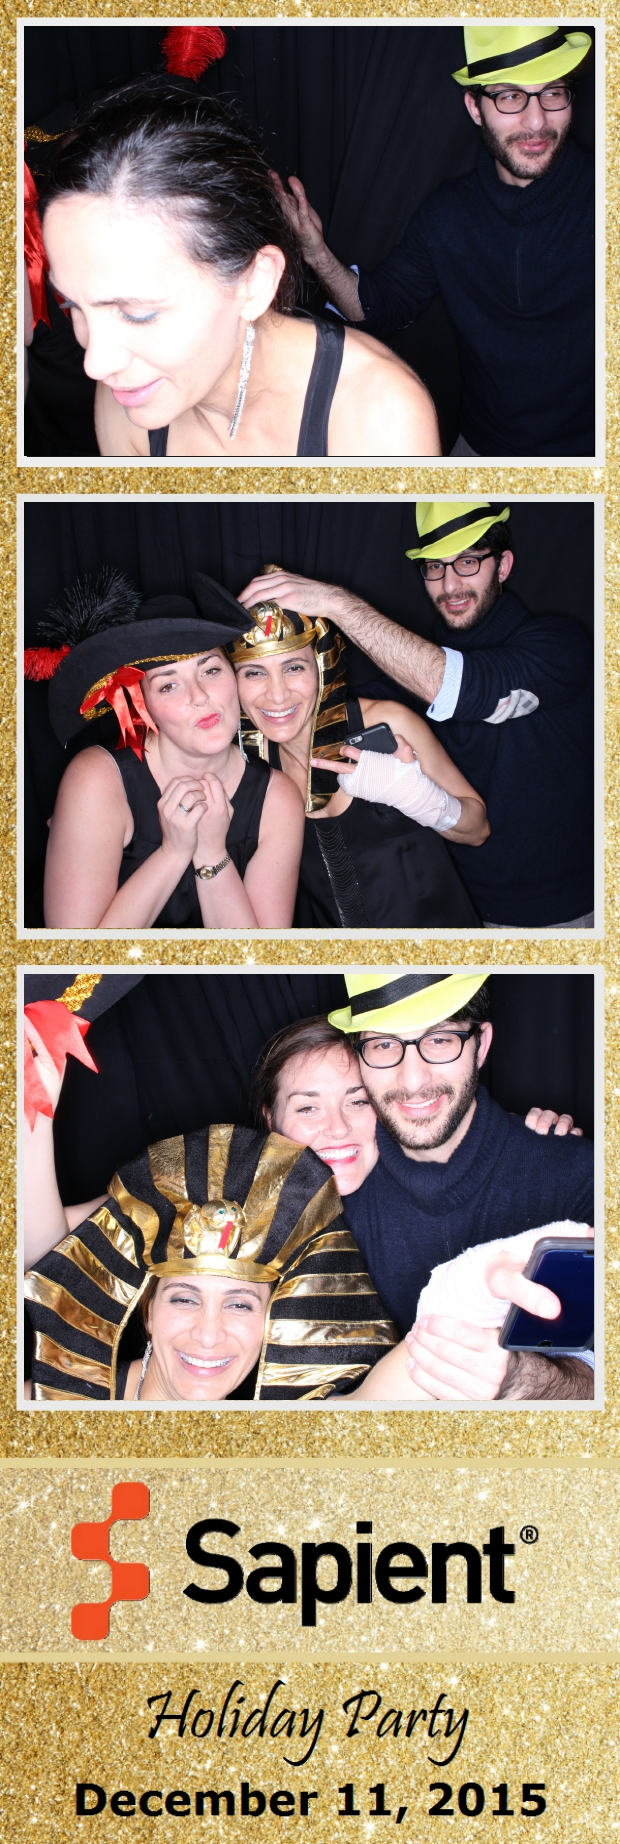 Guest House Events Photo Booth Sapient Holiday Party (89).jpg